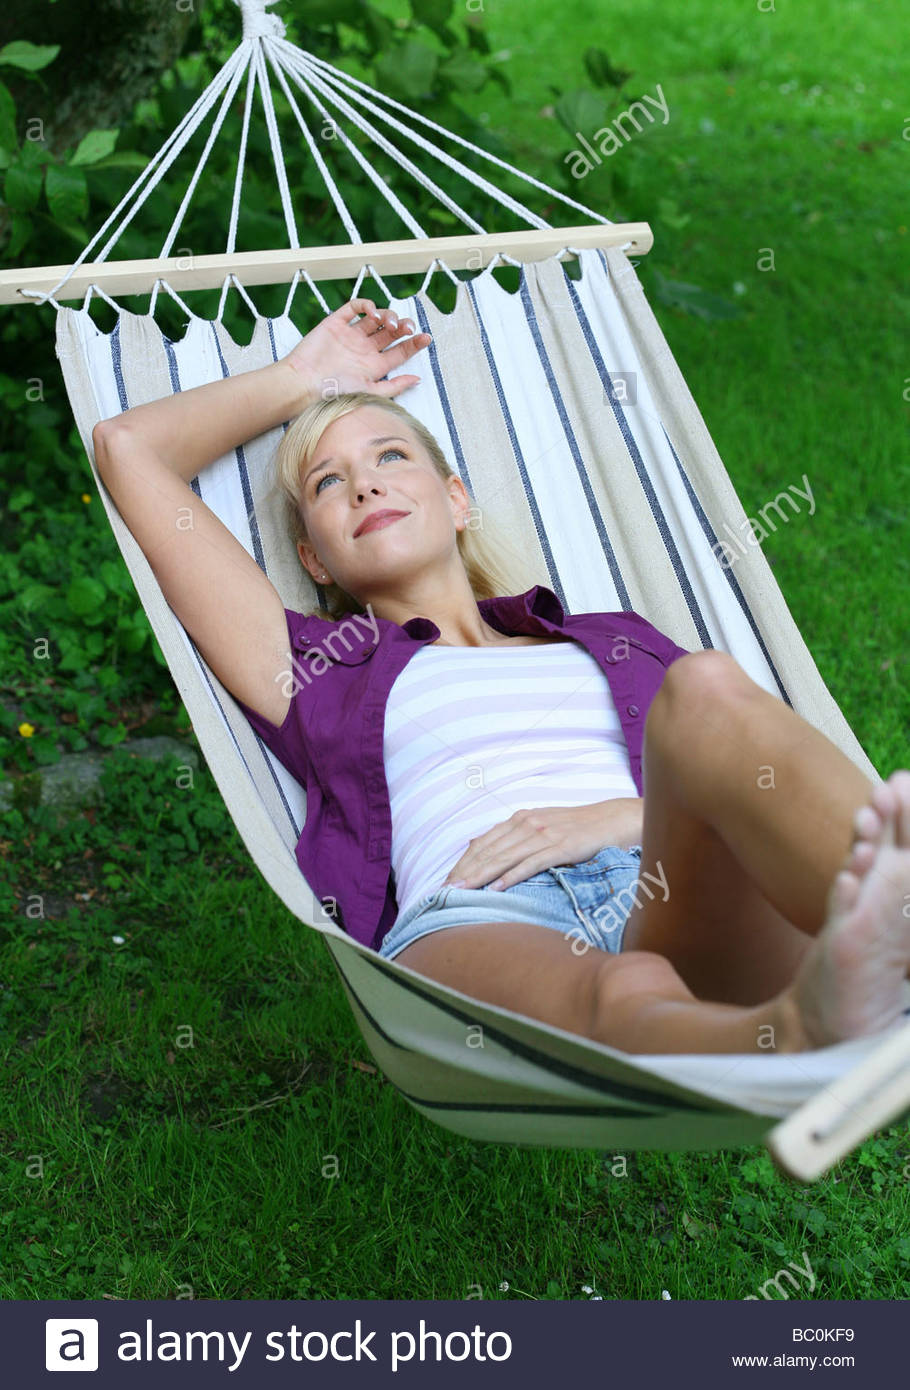 young blond woman relaxing in hammock - Stock Image